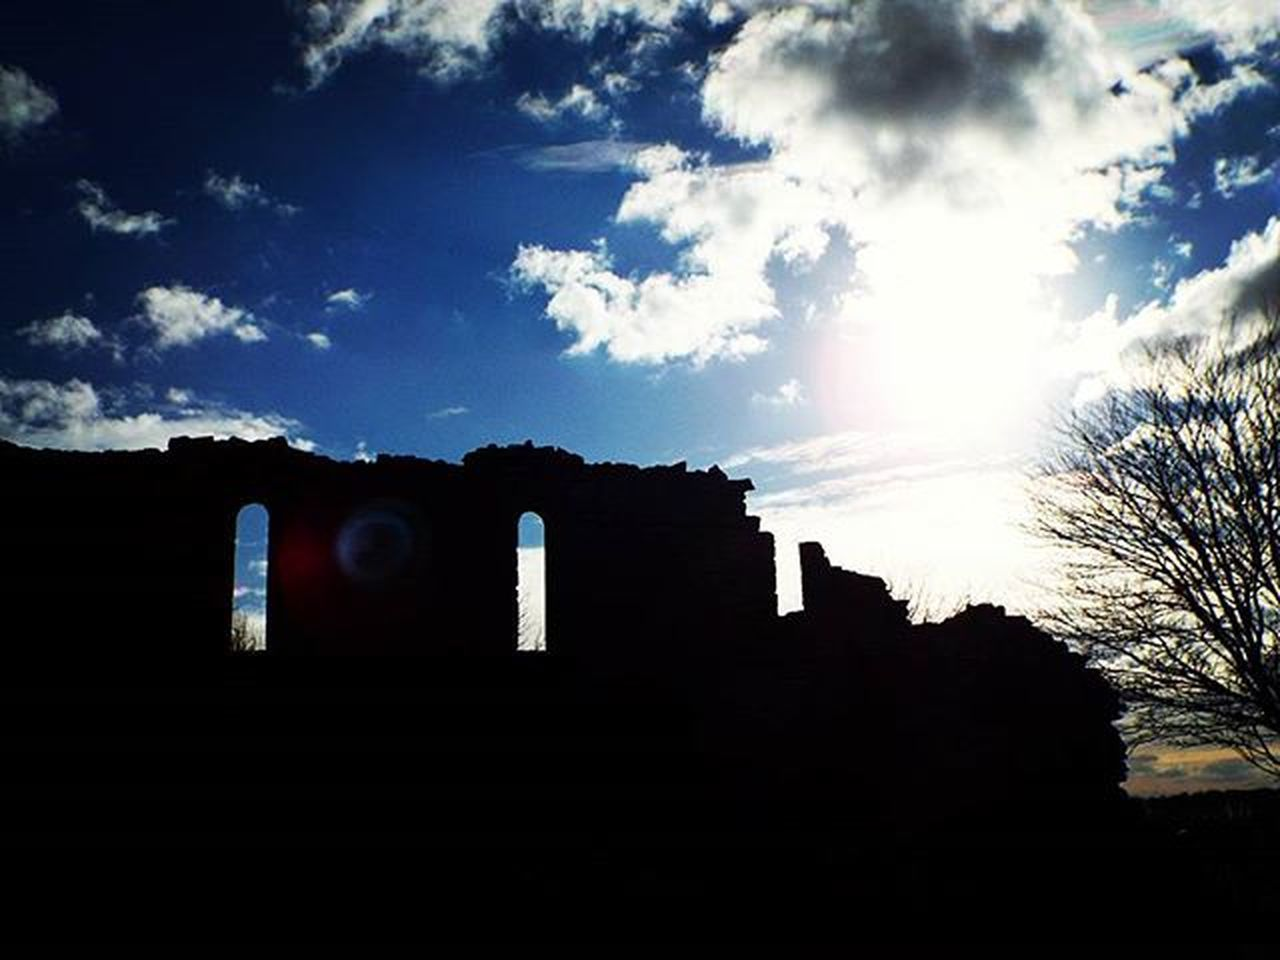 architecture, built structure, building exterior, history, silhouette, sky, cloud - sky, no people, low angle view, ancient, day, outdoors, ancient civilization